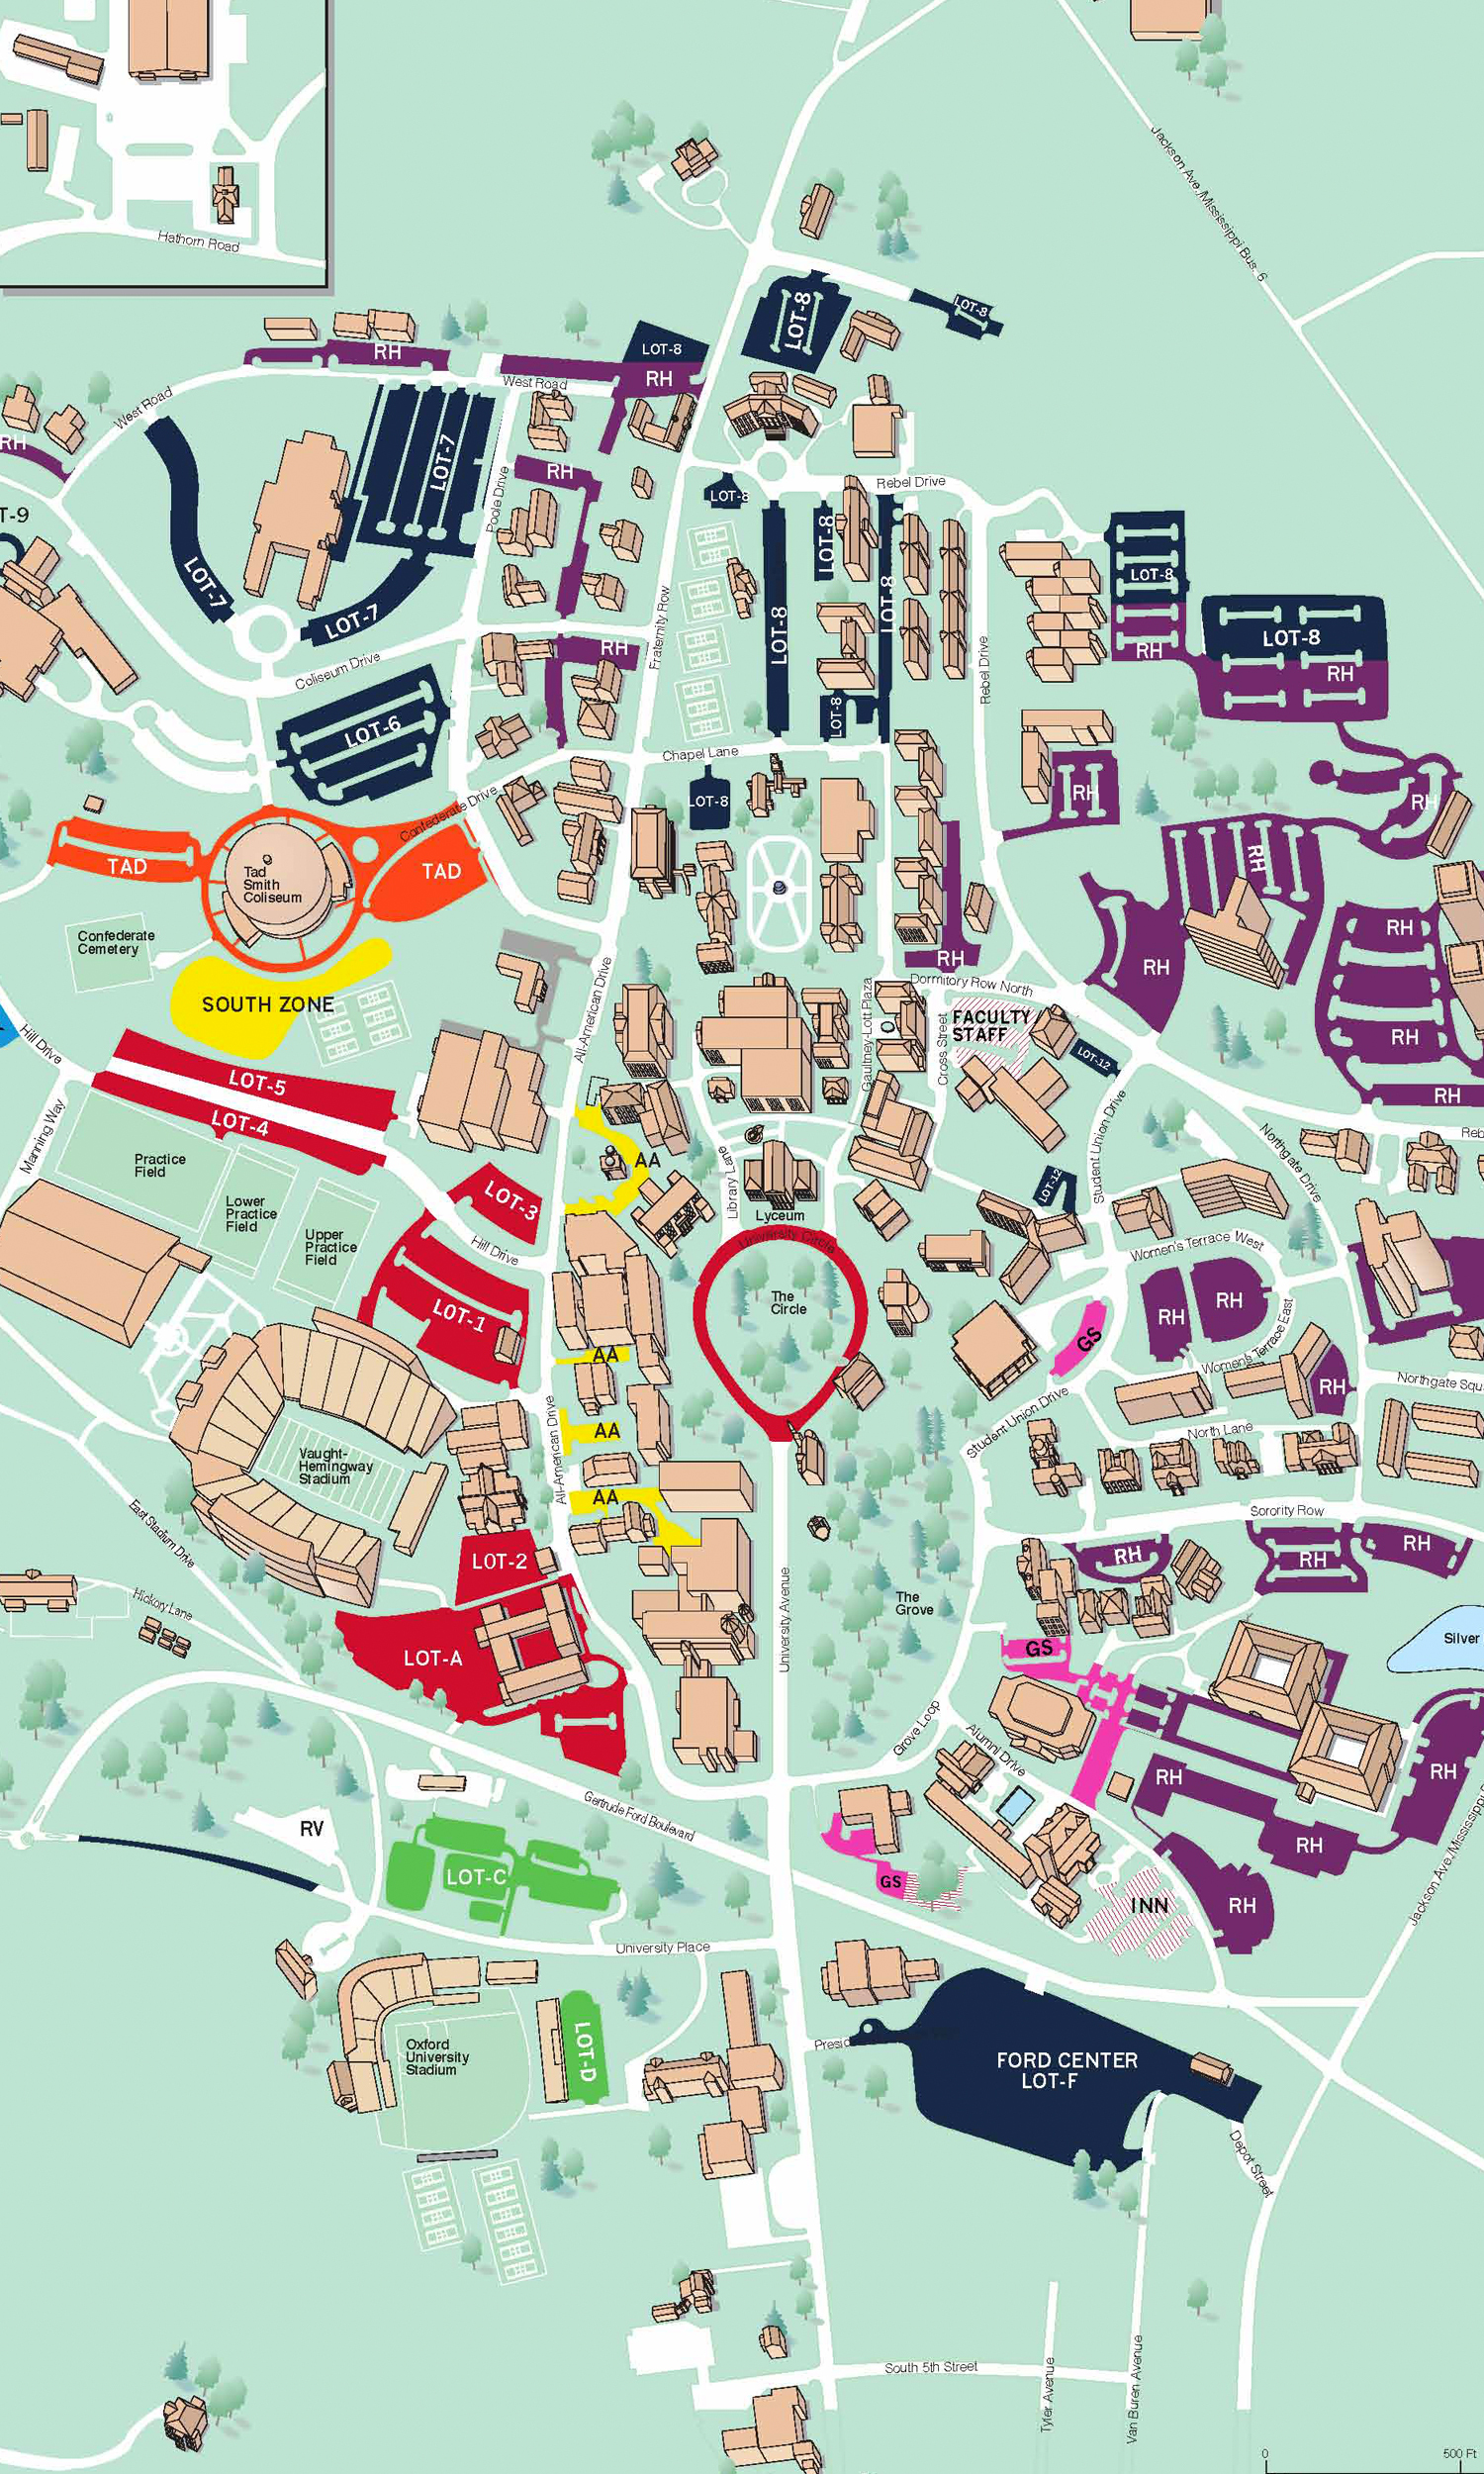 university of mississippi map Football Parking Becoming More Accessible Safer For Rebel Fans Ole Miss Athletics university of mississippi map